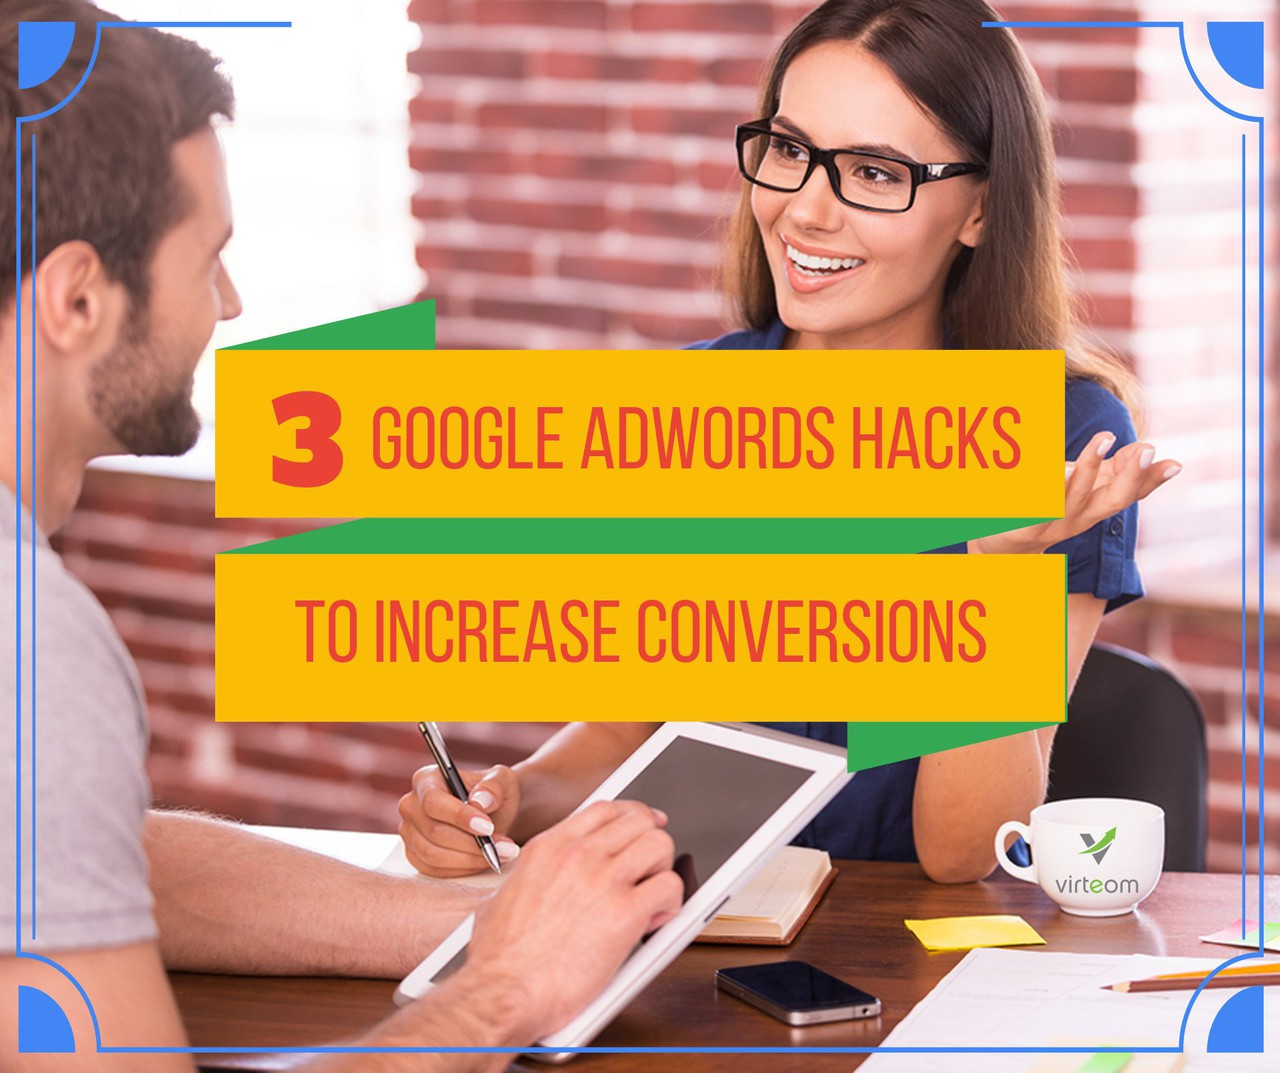 3 Google AdWords Hacks To Increase Conversions For The Long Term